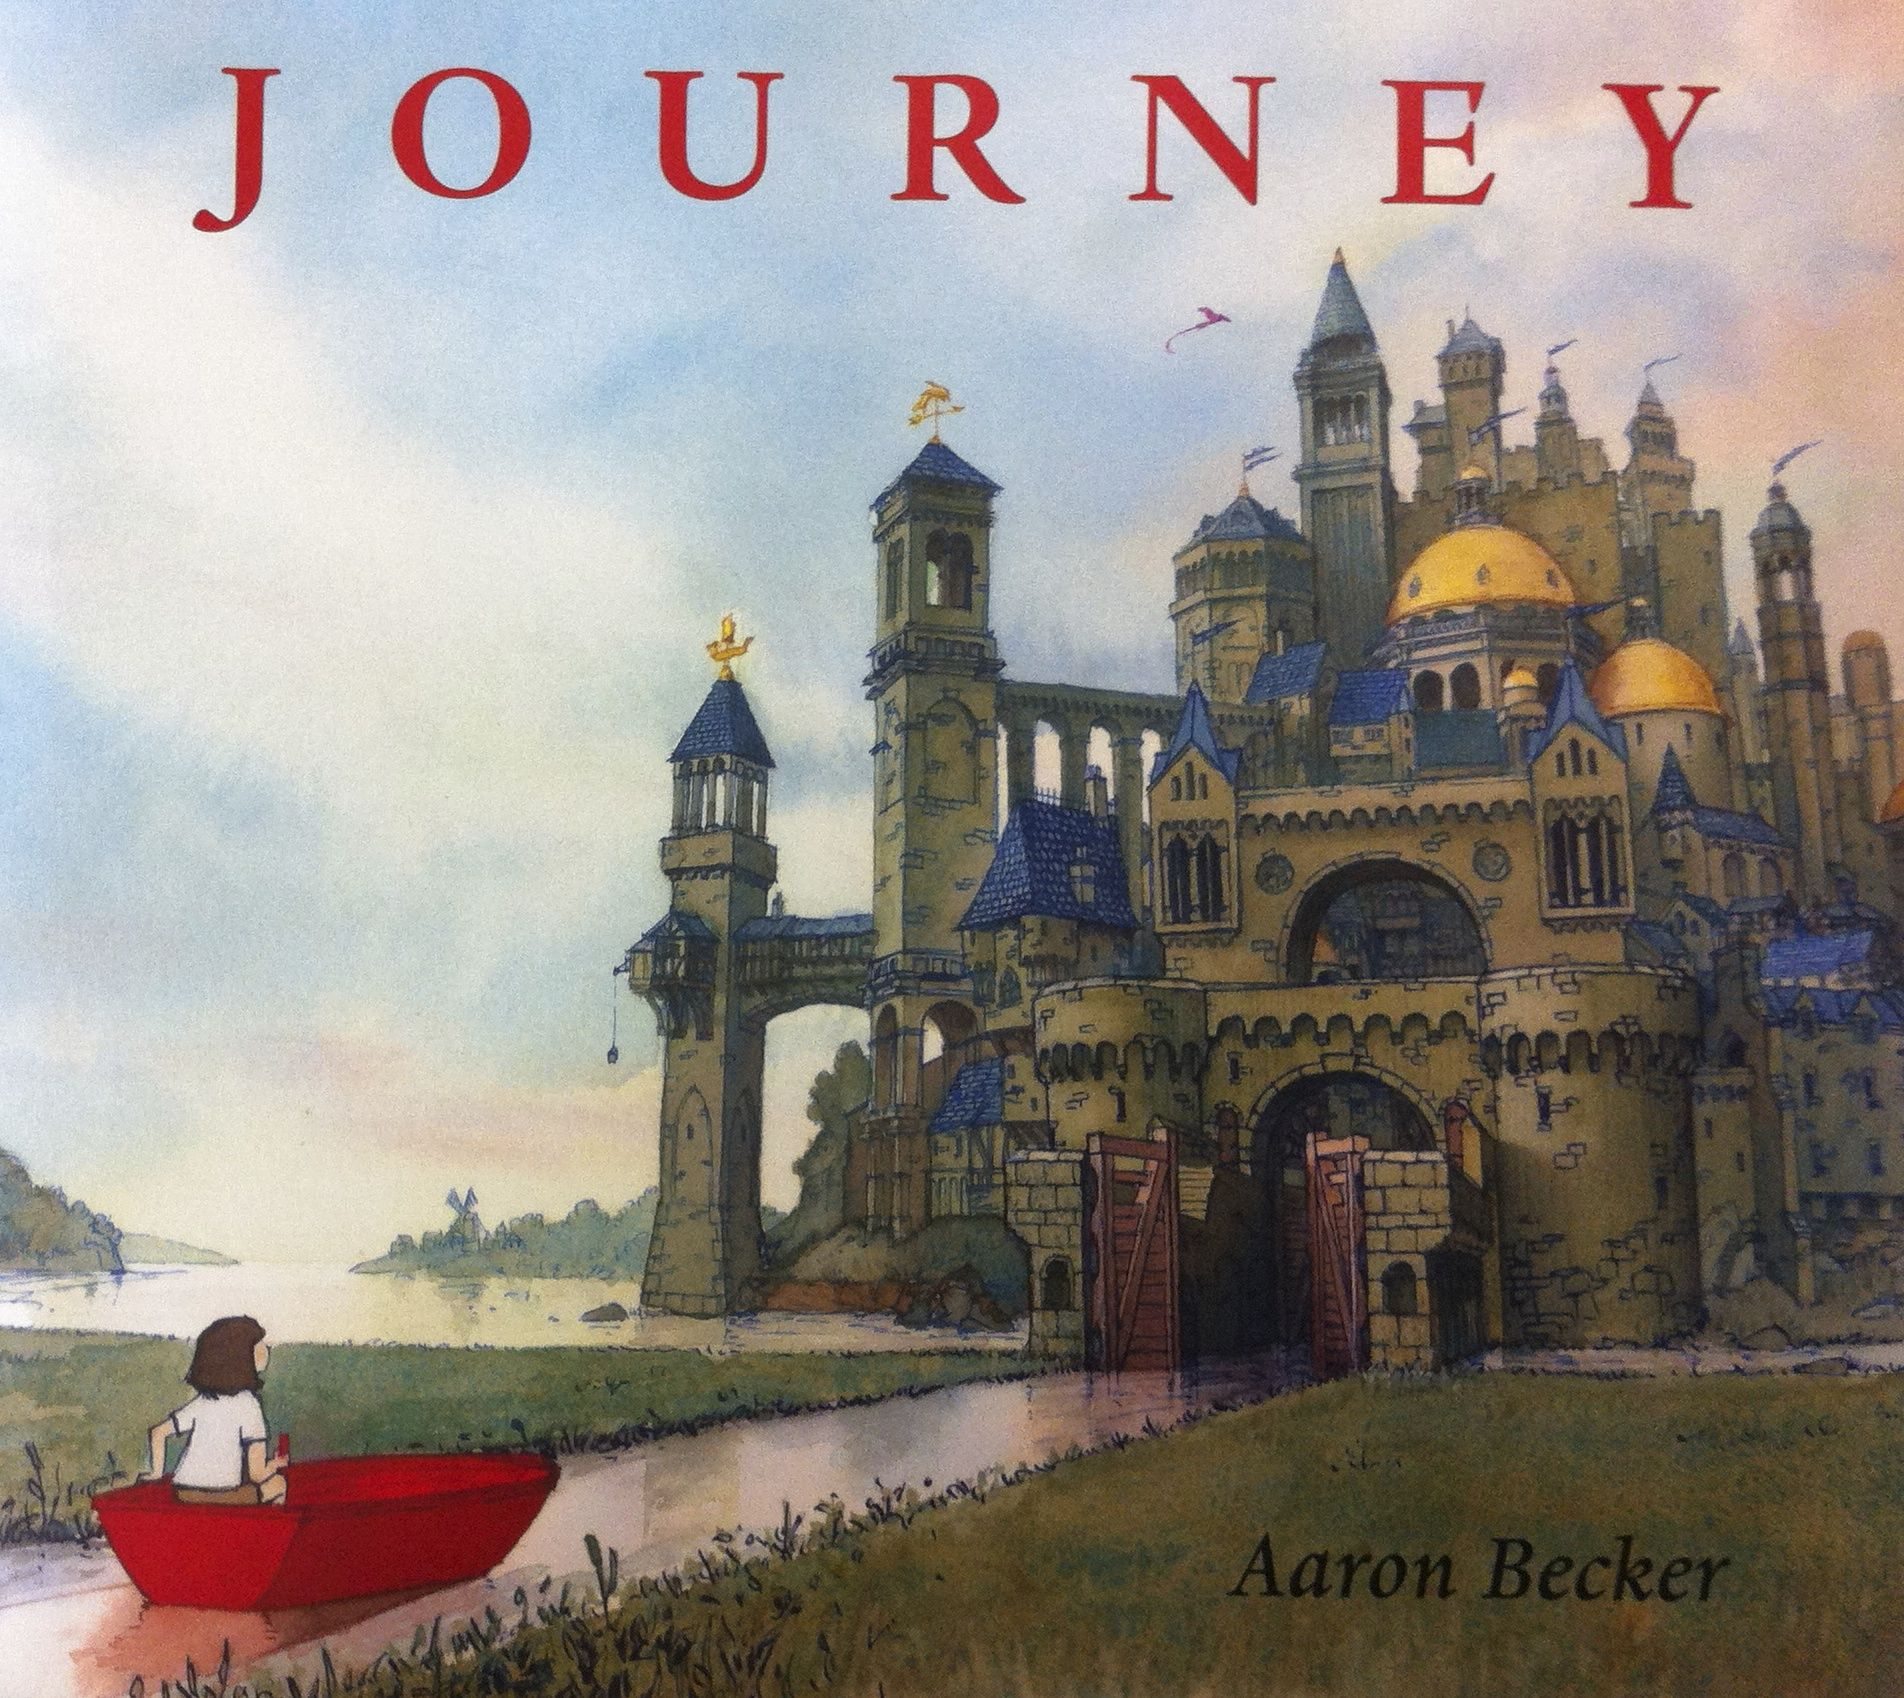 Journey by Aaron Becker (E BEC) | Wordless picture books, Inference  activities, Making inferences